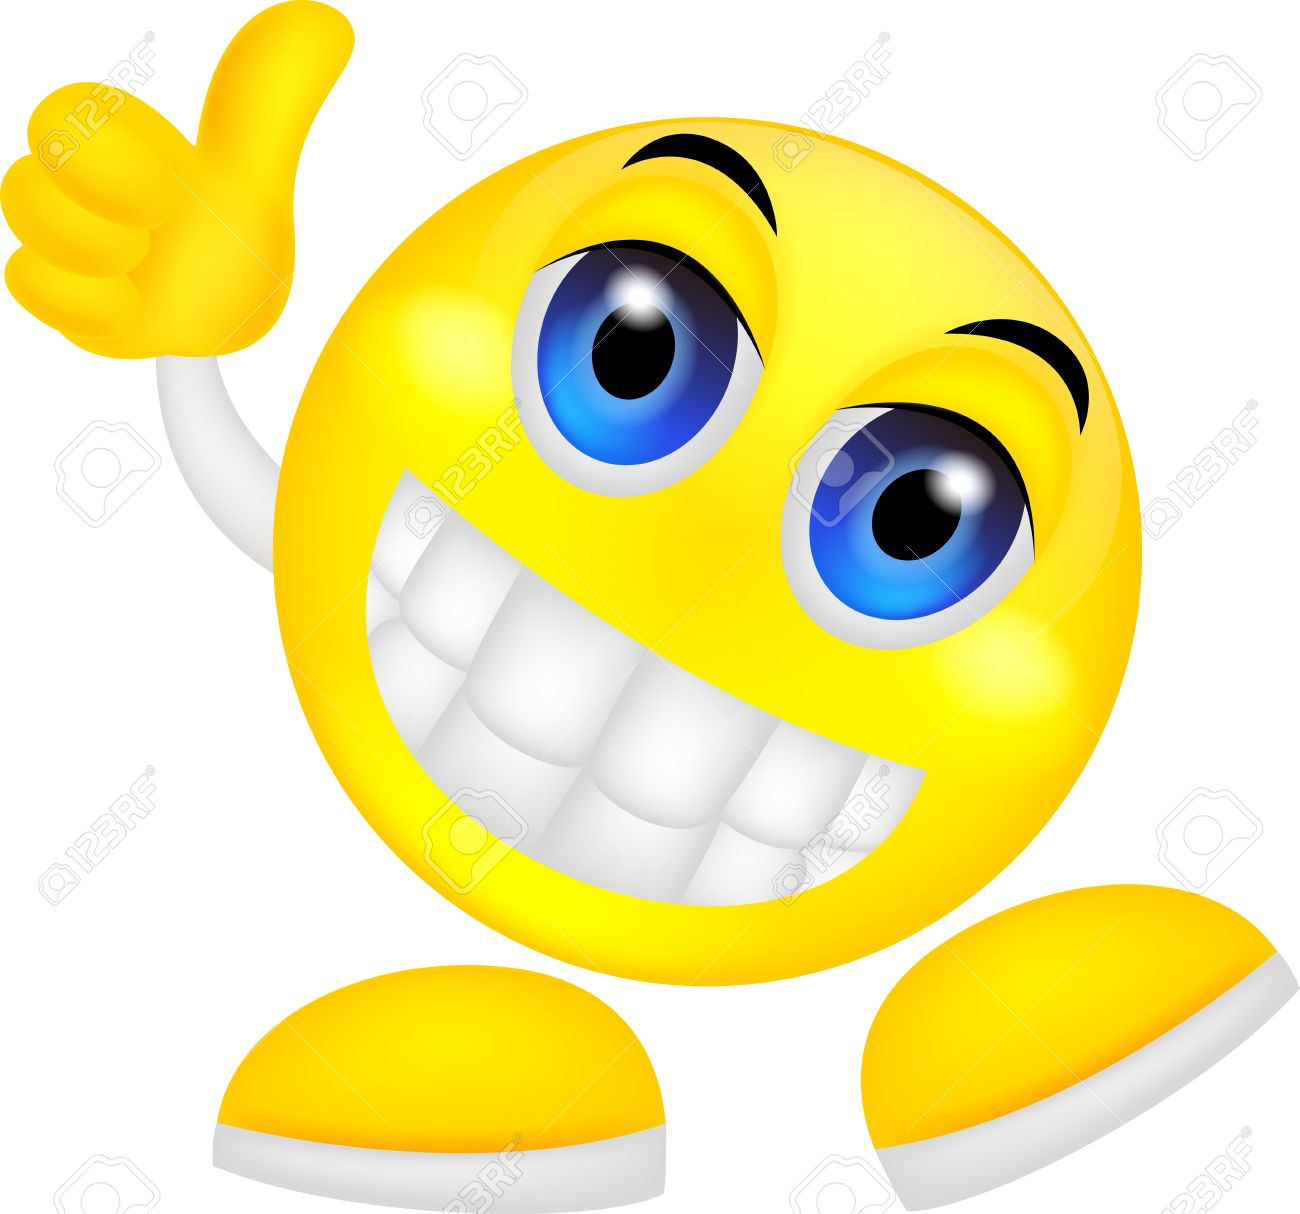 19553510-vector-illustration-of-Smiley-emoticon-with-thumb-up-Stock-Photo.jpg